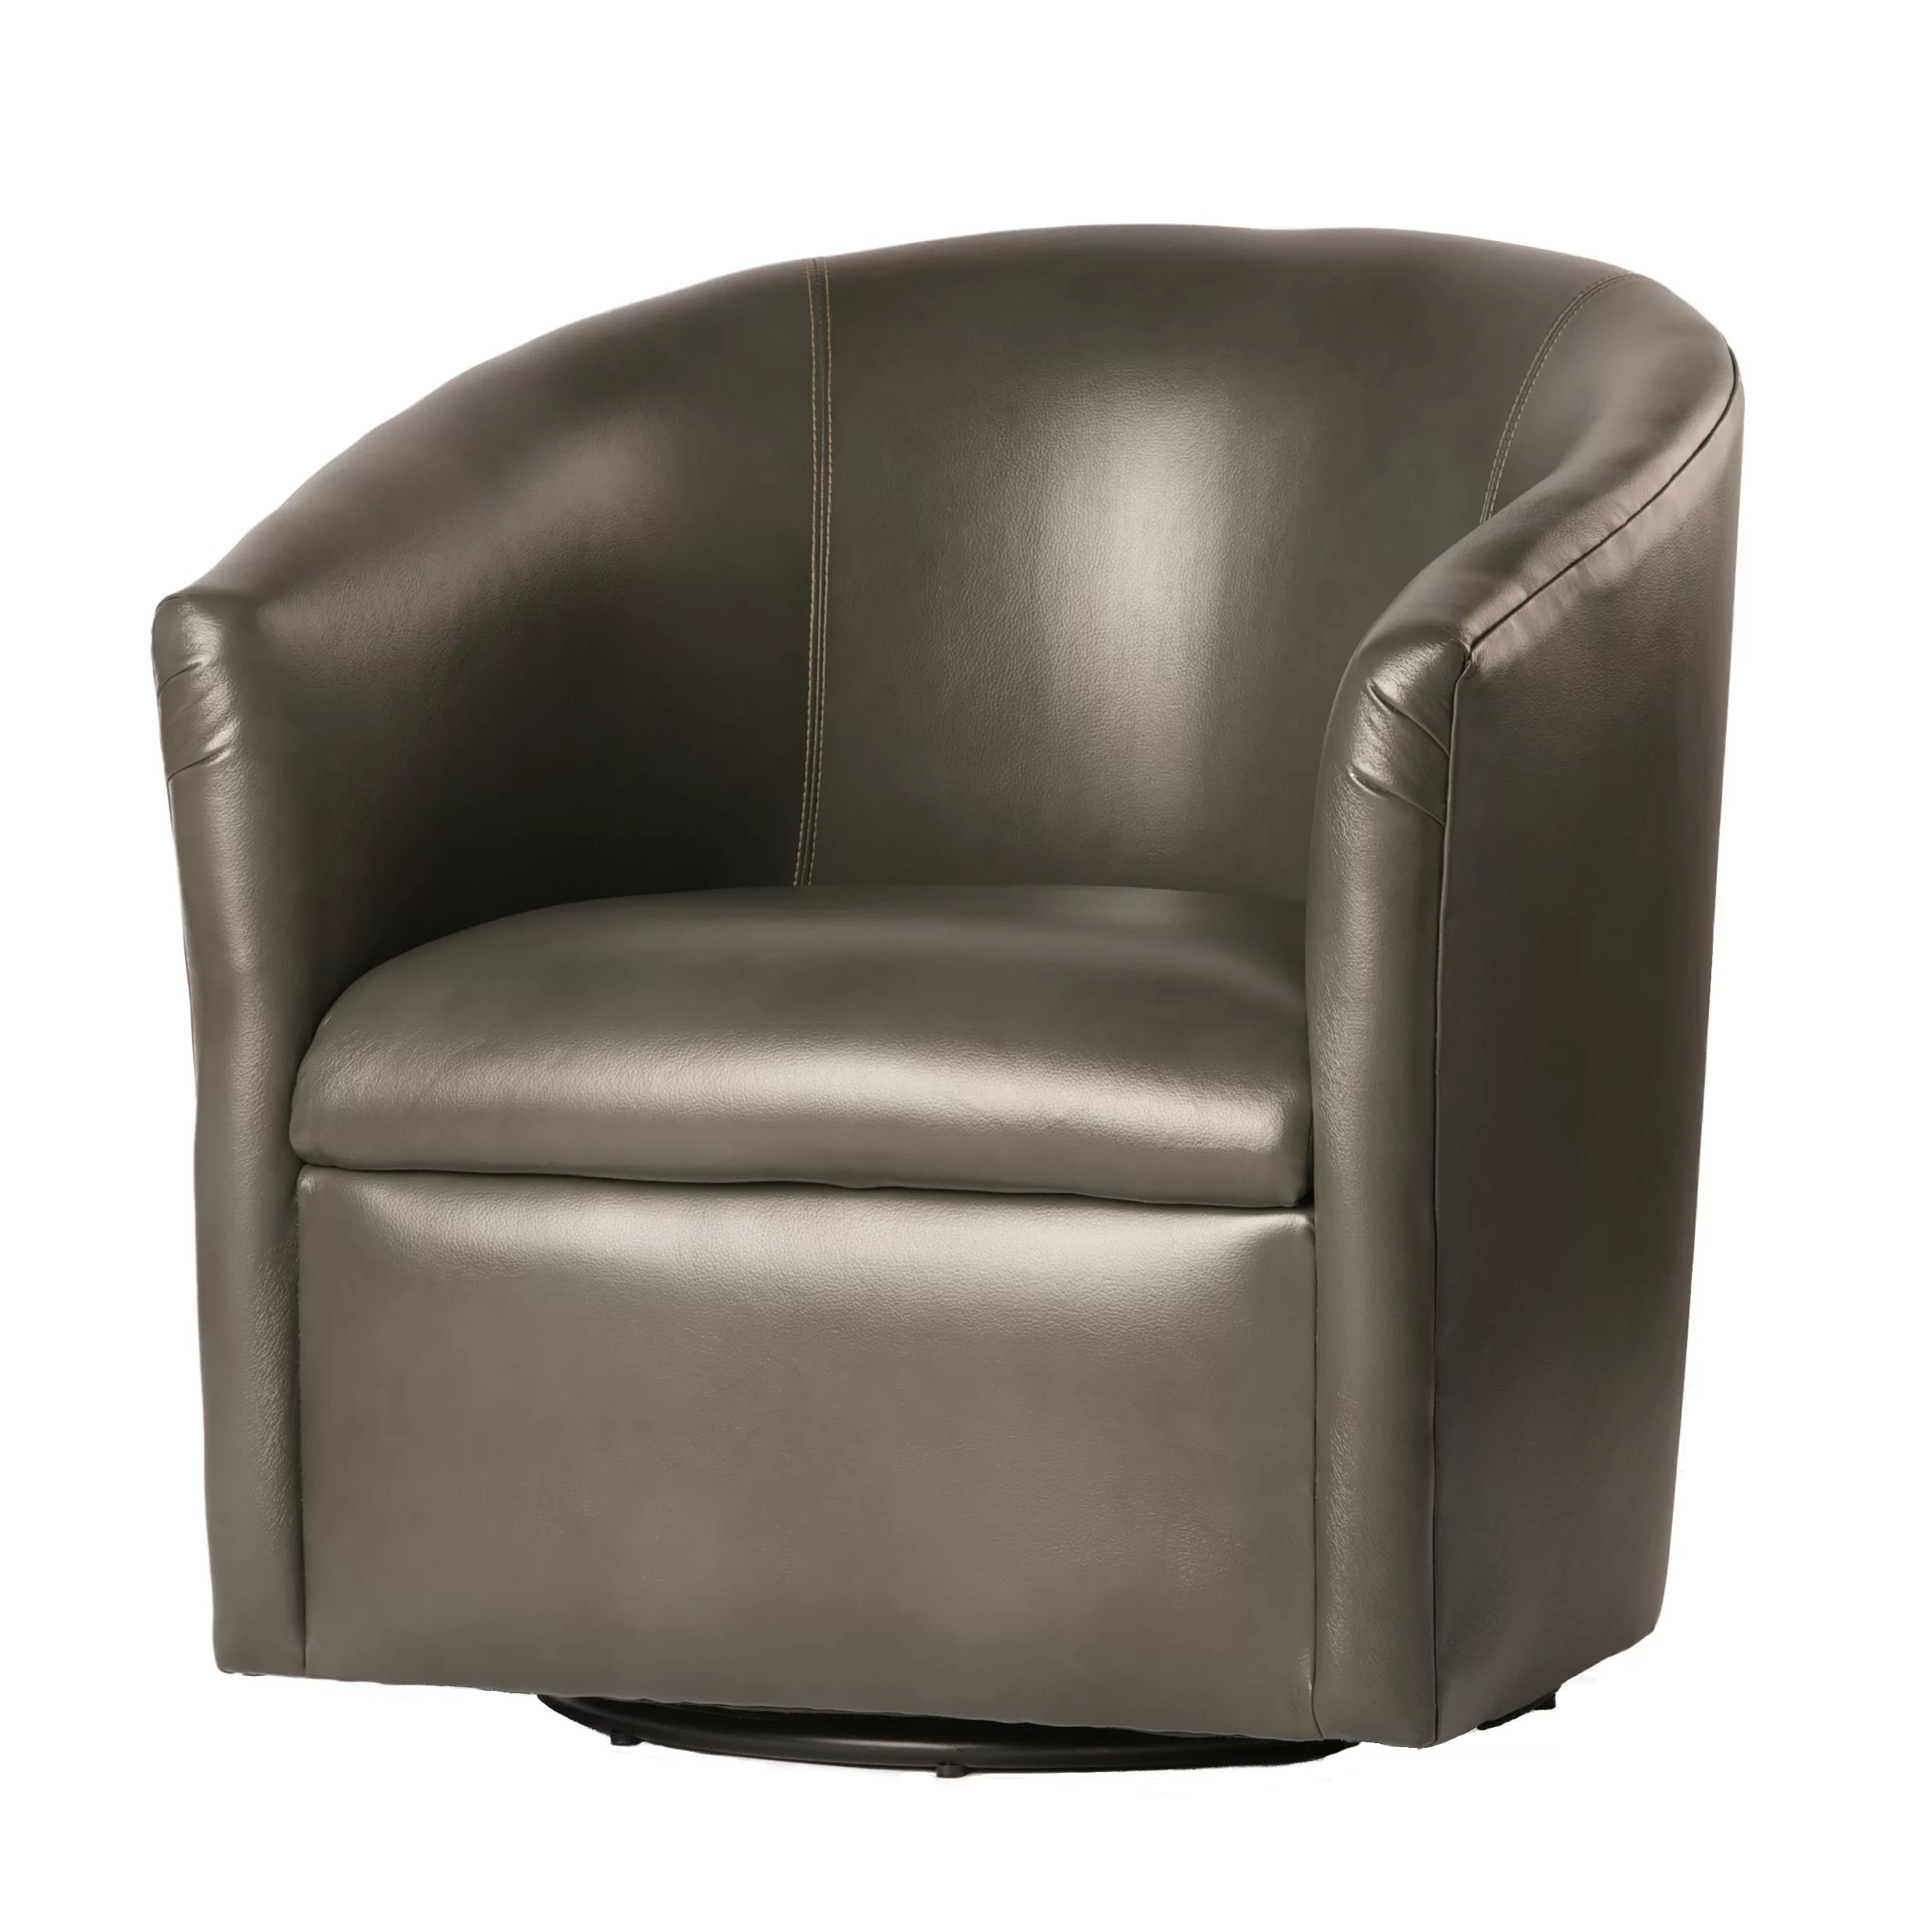 wayfair swivel chair barber shop chairs for sale used comfort pointe draper barrel and reviews